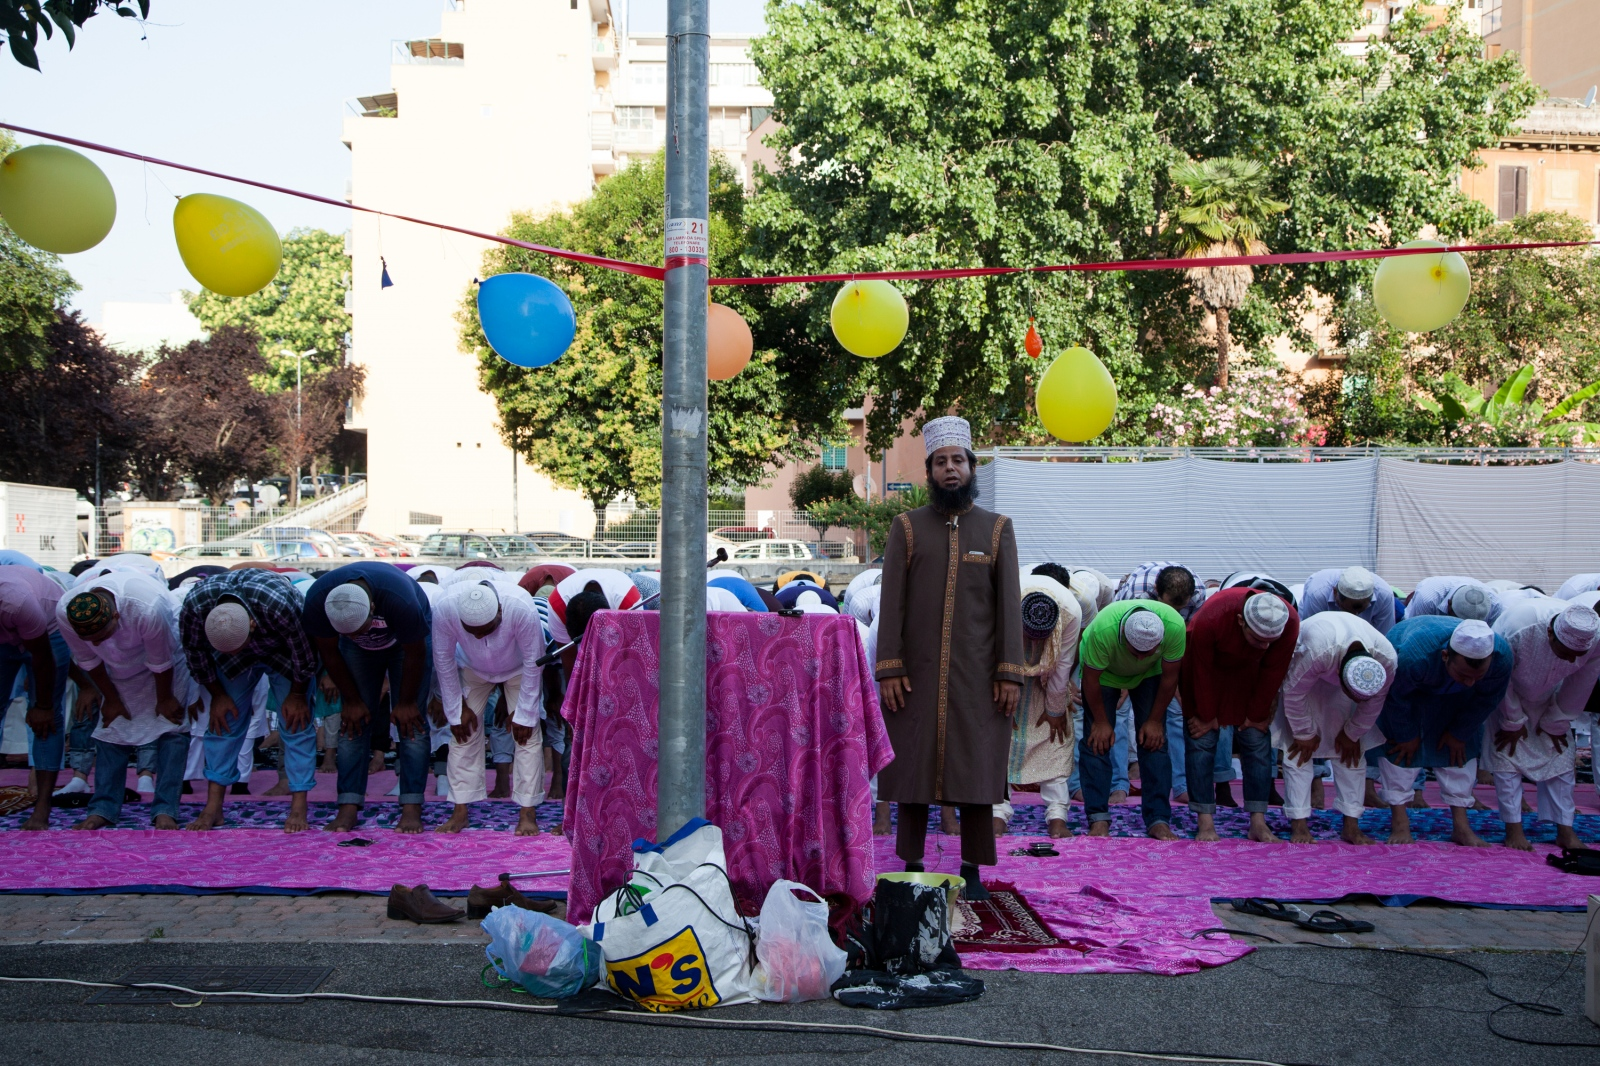 Members of the Bangladeshi community of Rome perform the Eid al-Fitr prayer, that marks the end of Ramadan, in a public square in Torpignattara, a working class neighborhood in the southeastern suburbs of Rome.